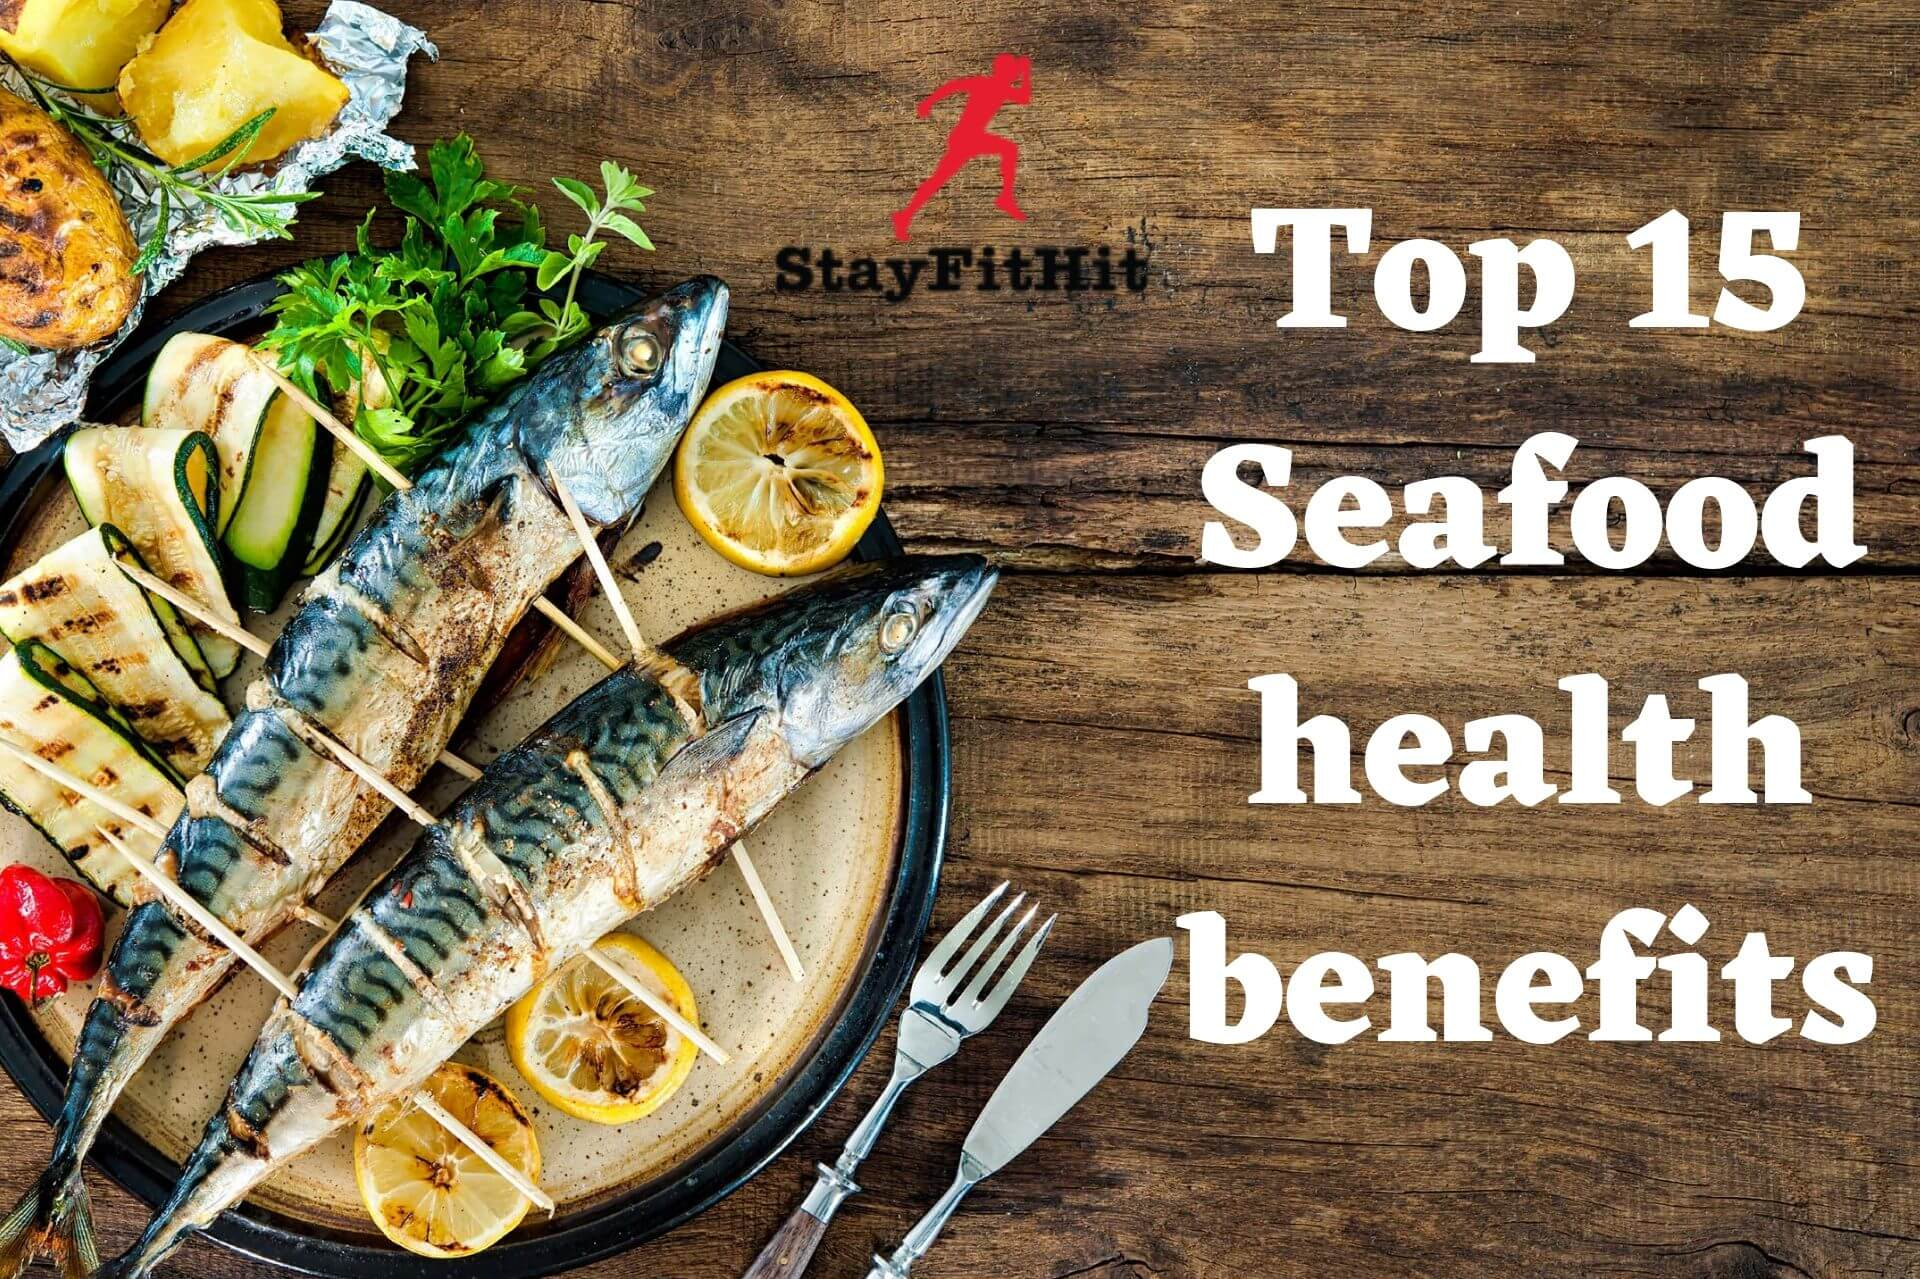 feature image:Top 15 Seafood health benefits